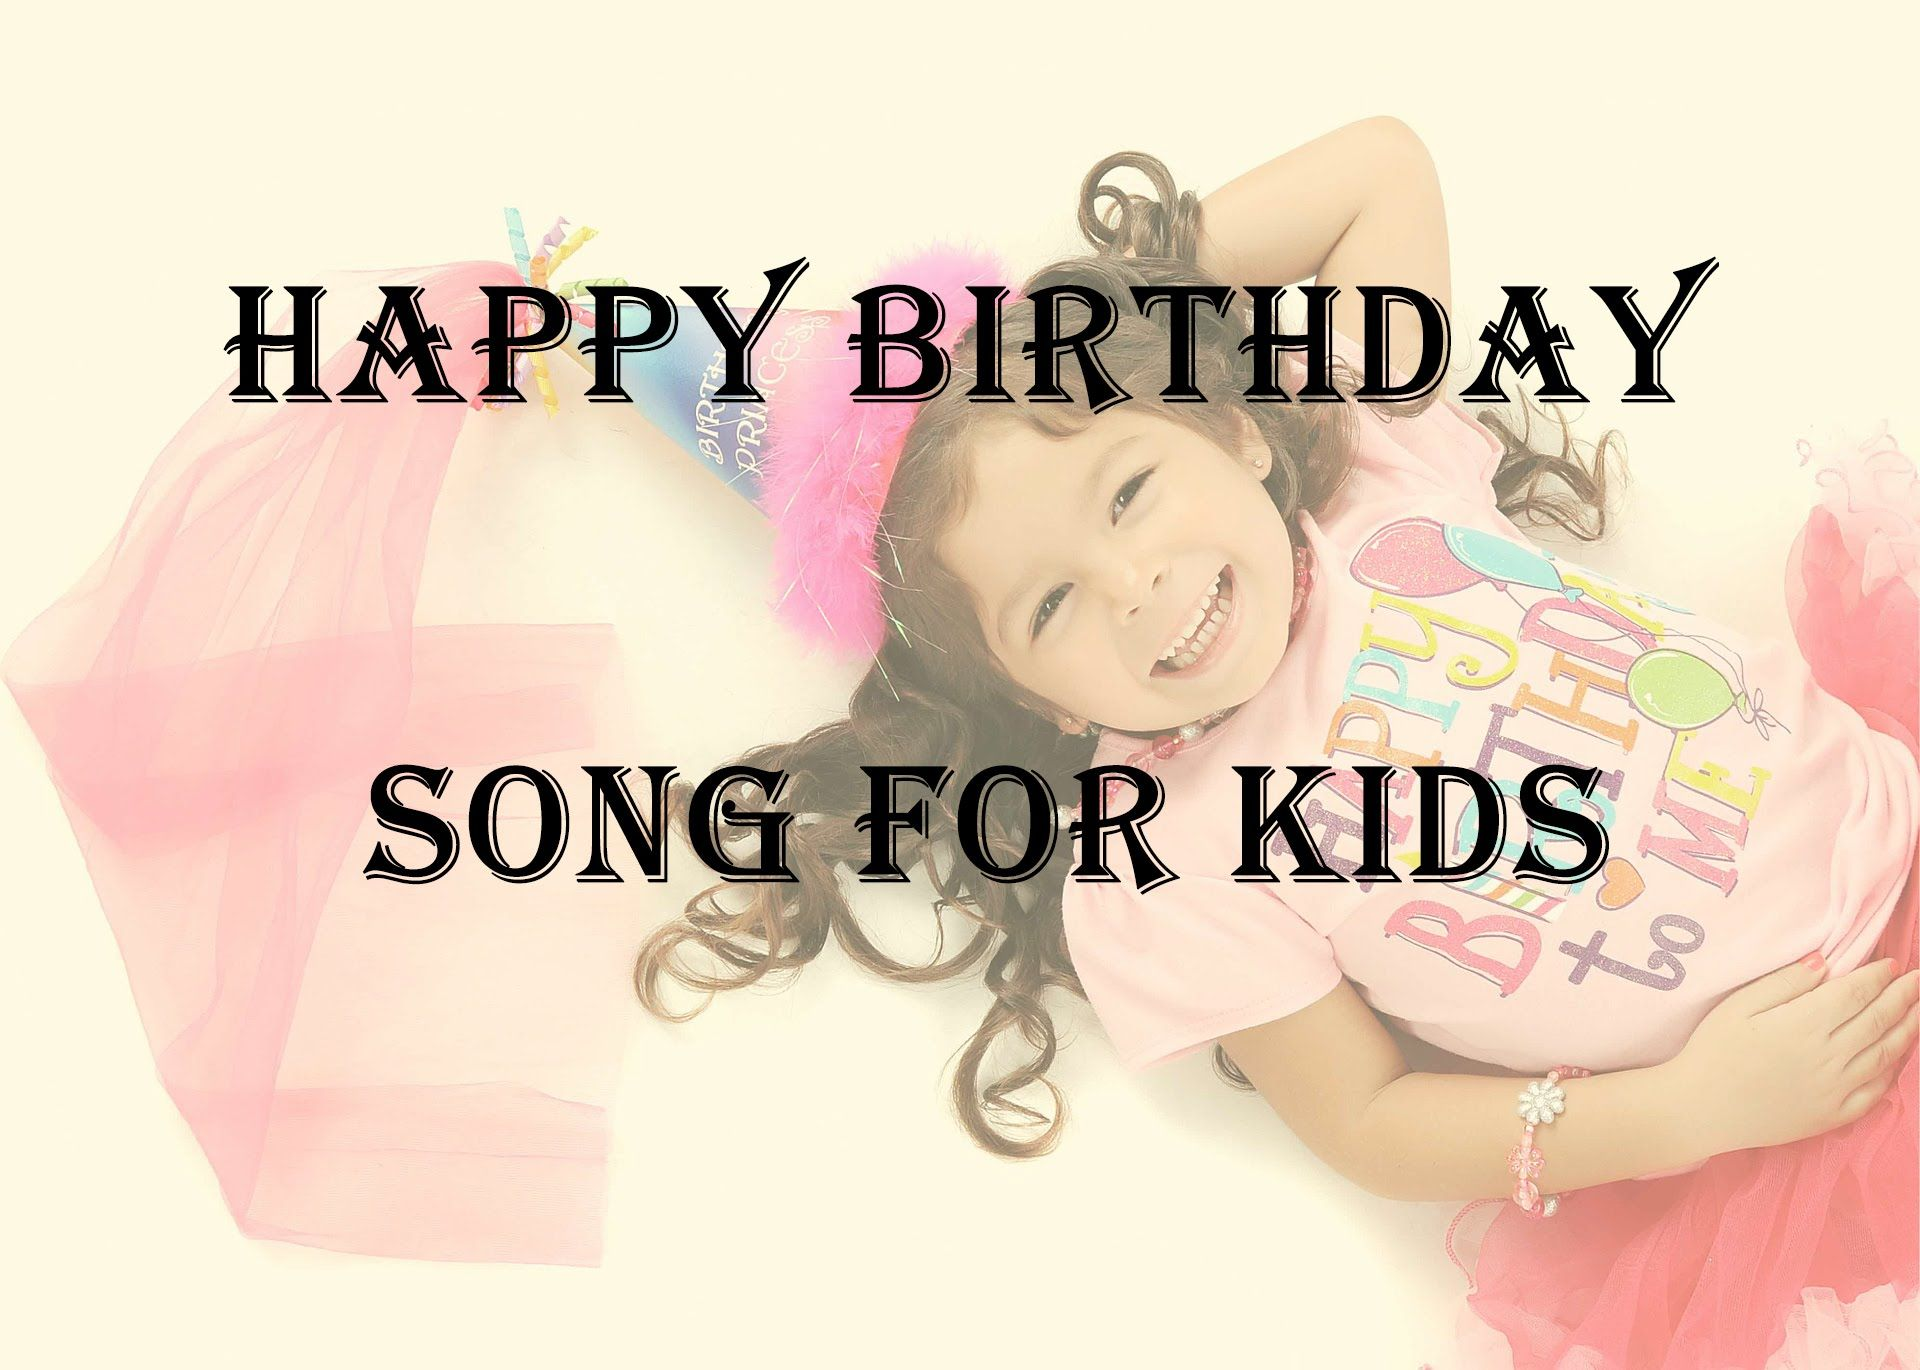 Happy birthday song for kids & children, funny birthday